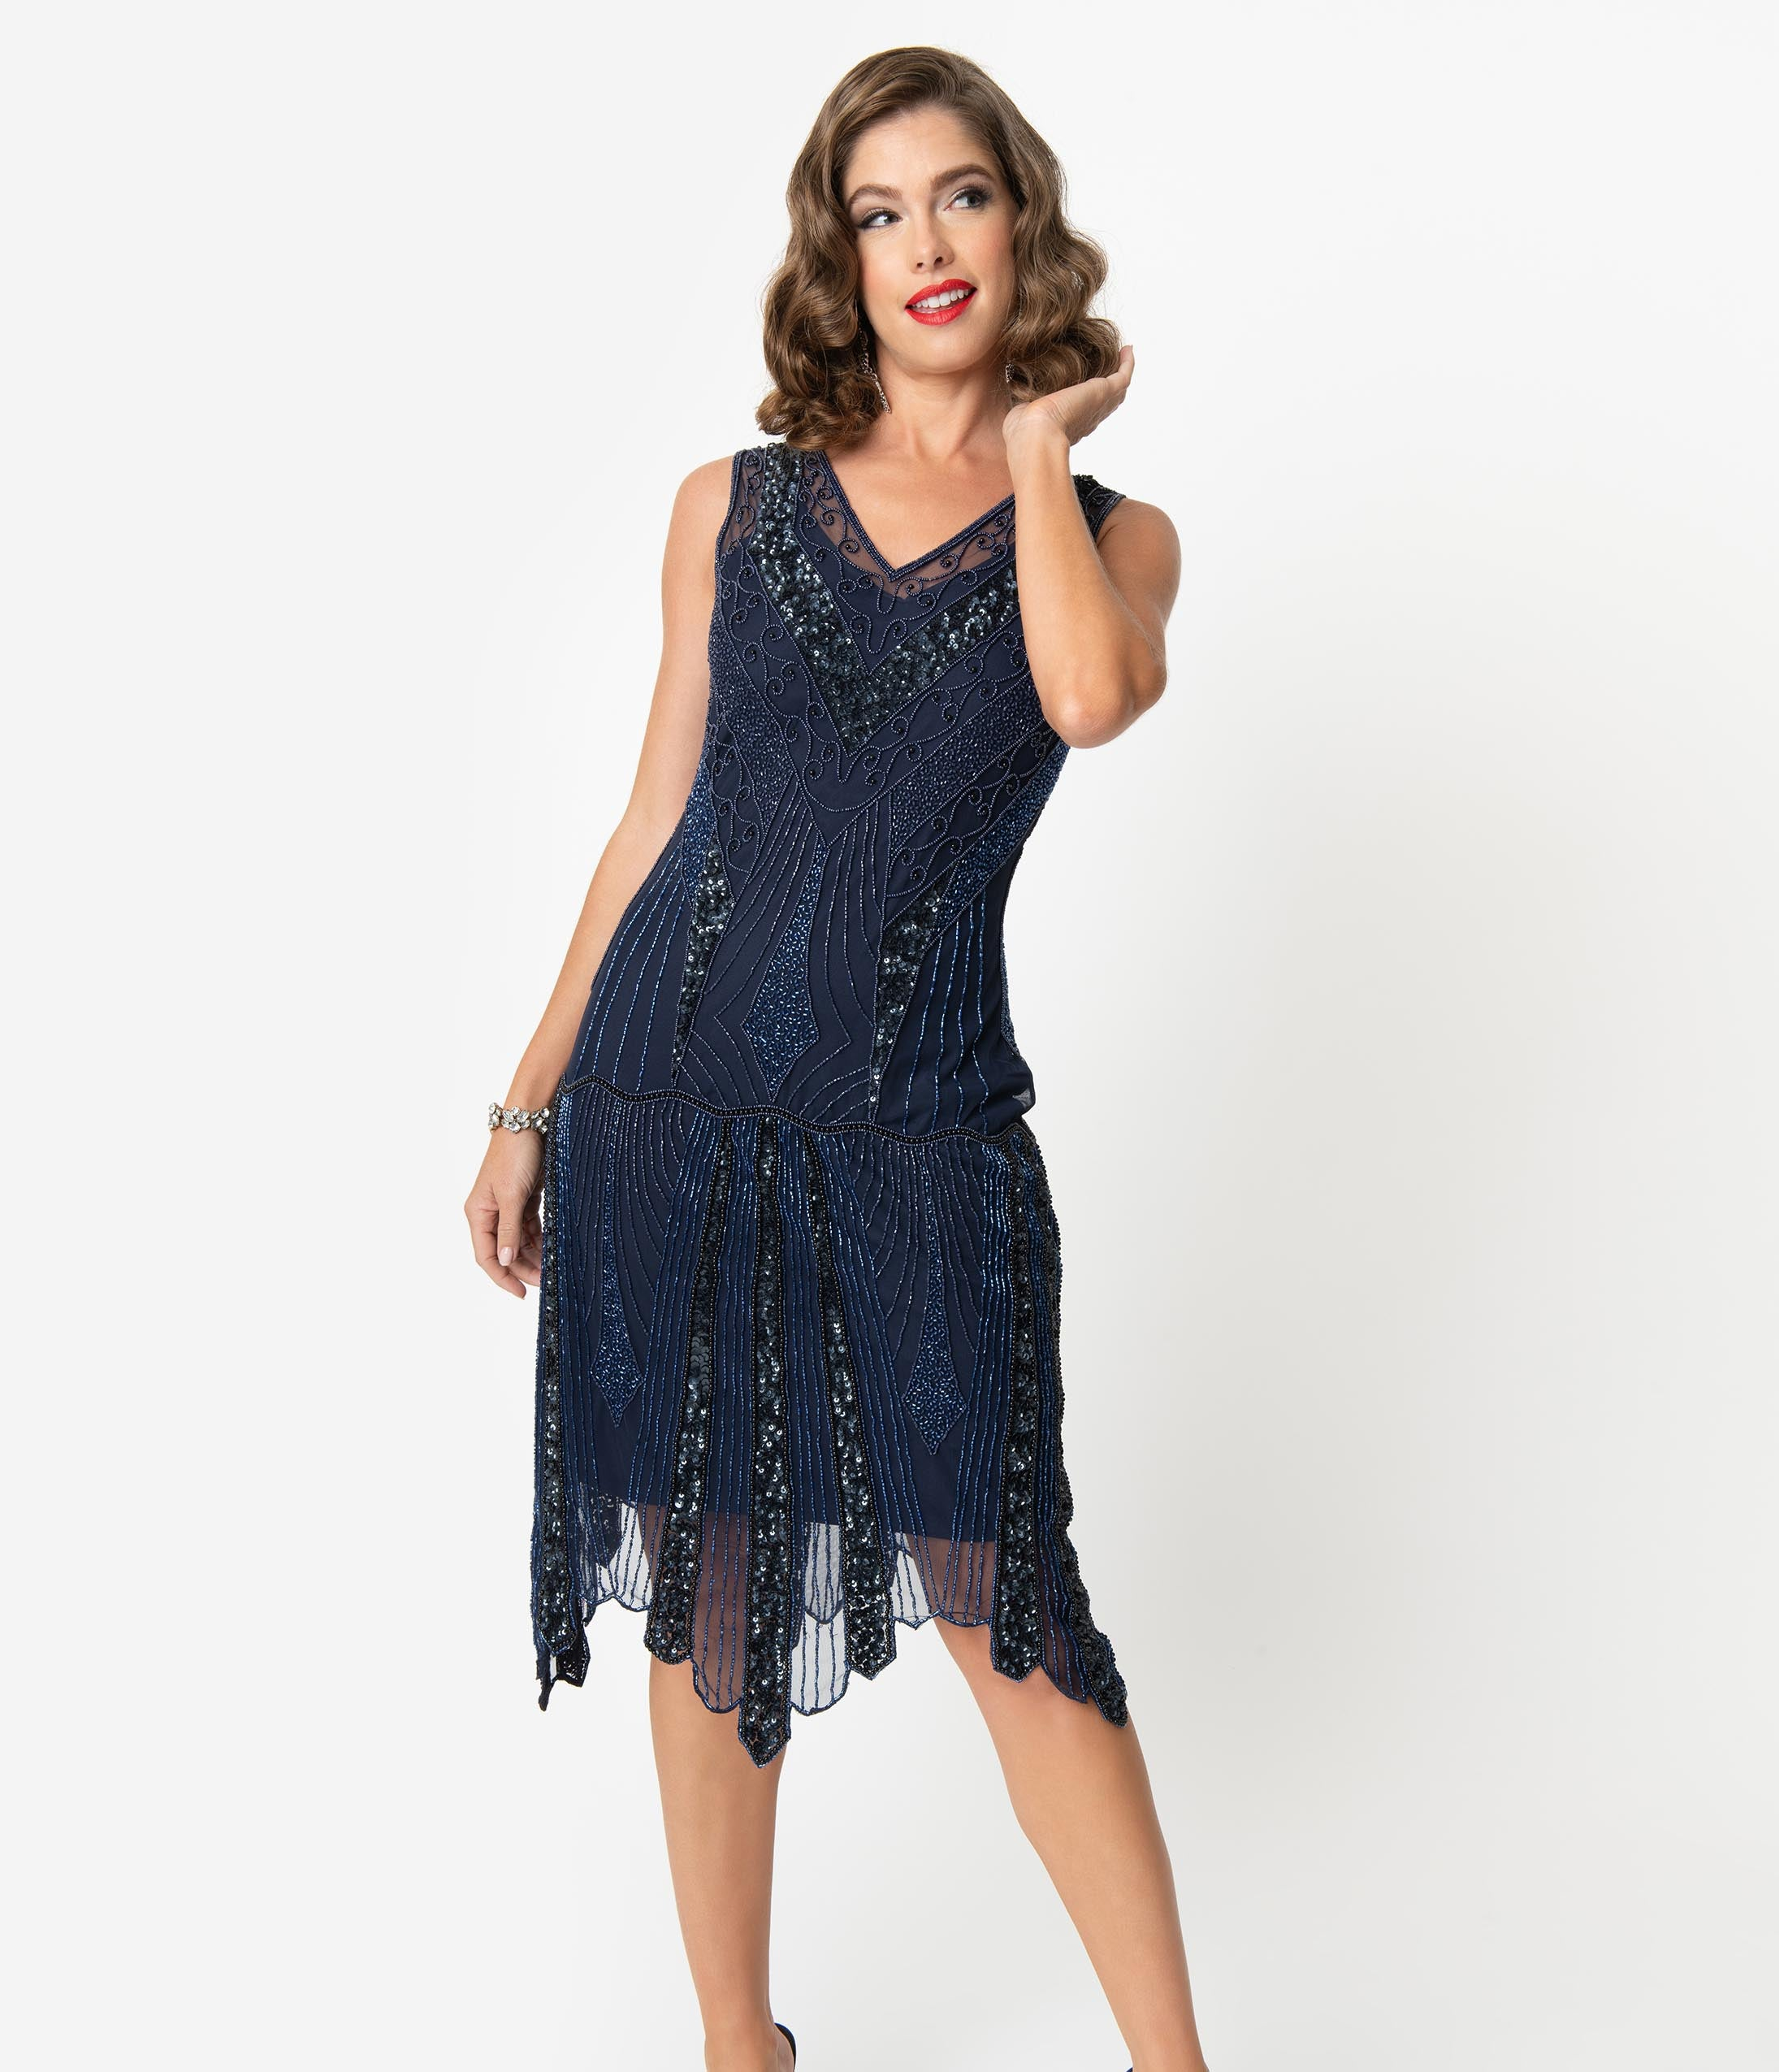 Downton Abbey Inspired Dresses 1920S Style Navy Blue Beaded Deco Sleeveless Renee Flapper Dress $178.00 AT vintagedancer.com